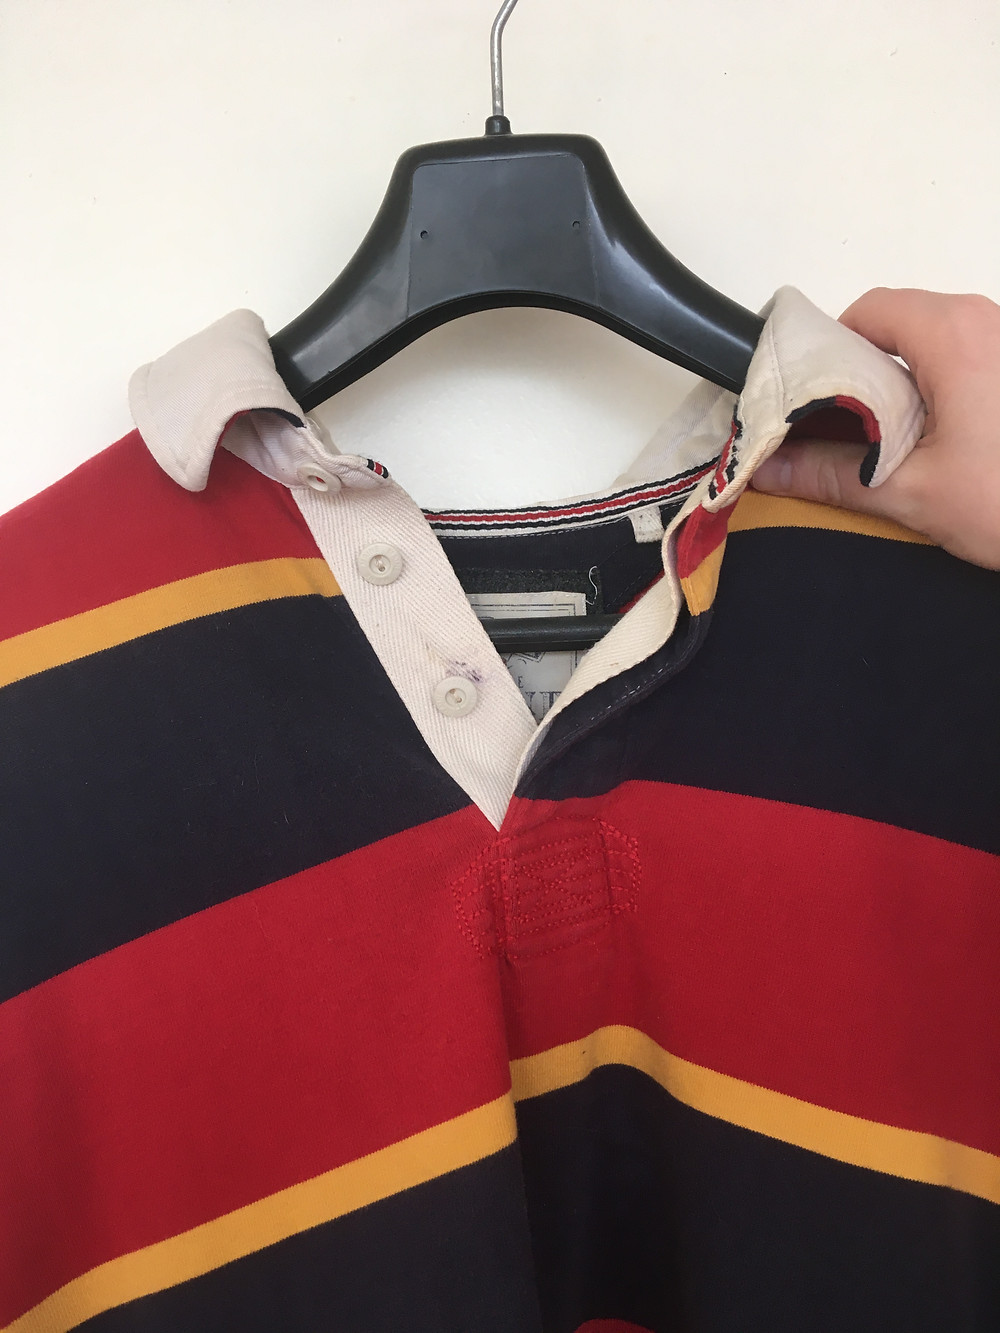 A red, yellow and black striped shirt on a coat hanger, being held up by a hand.